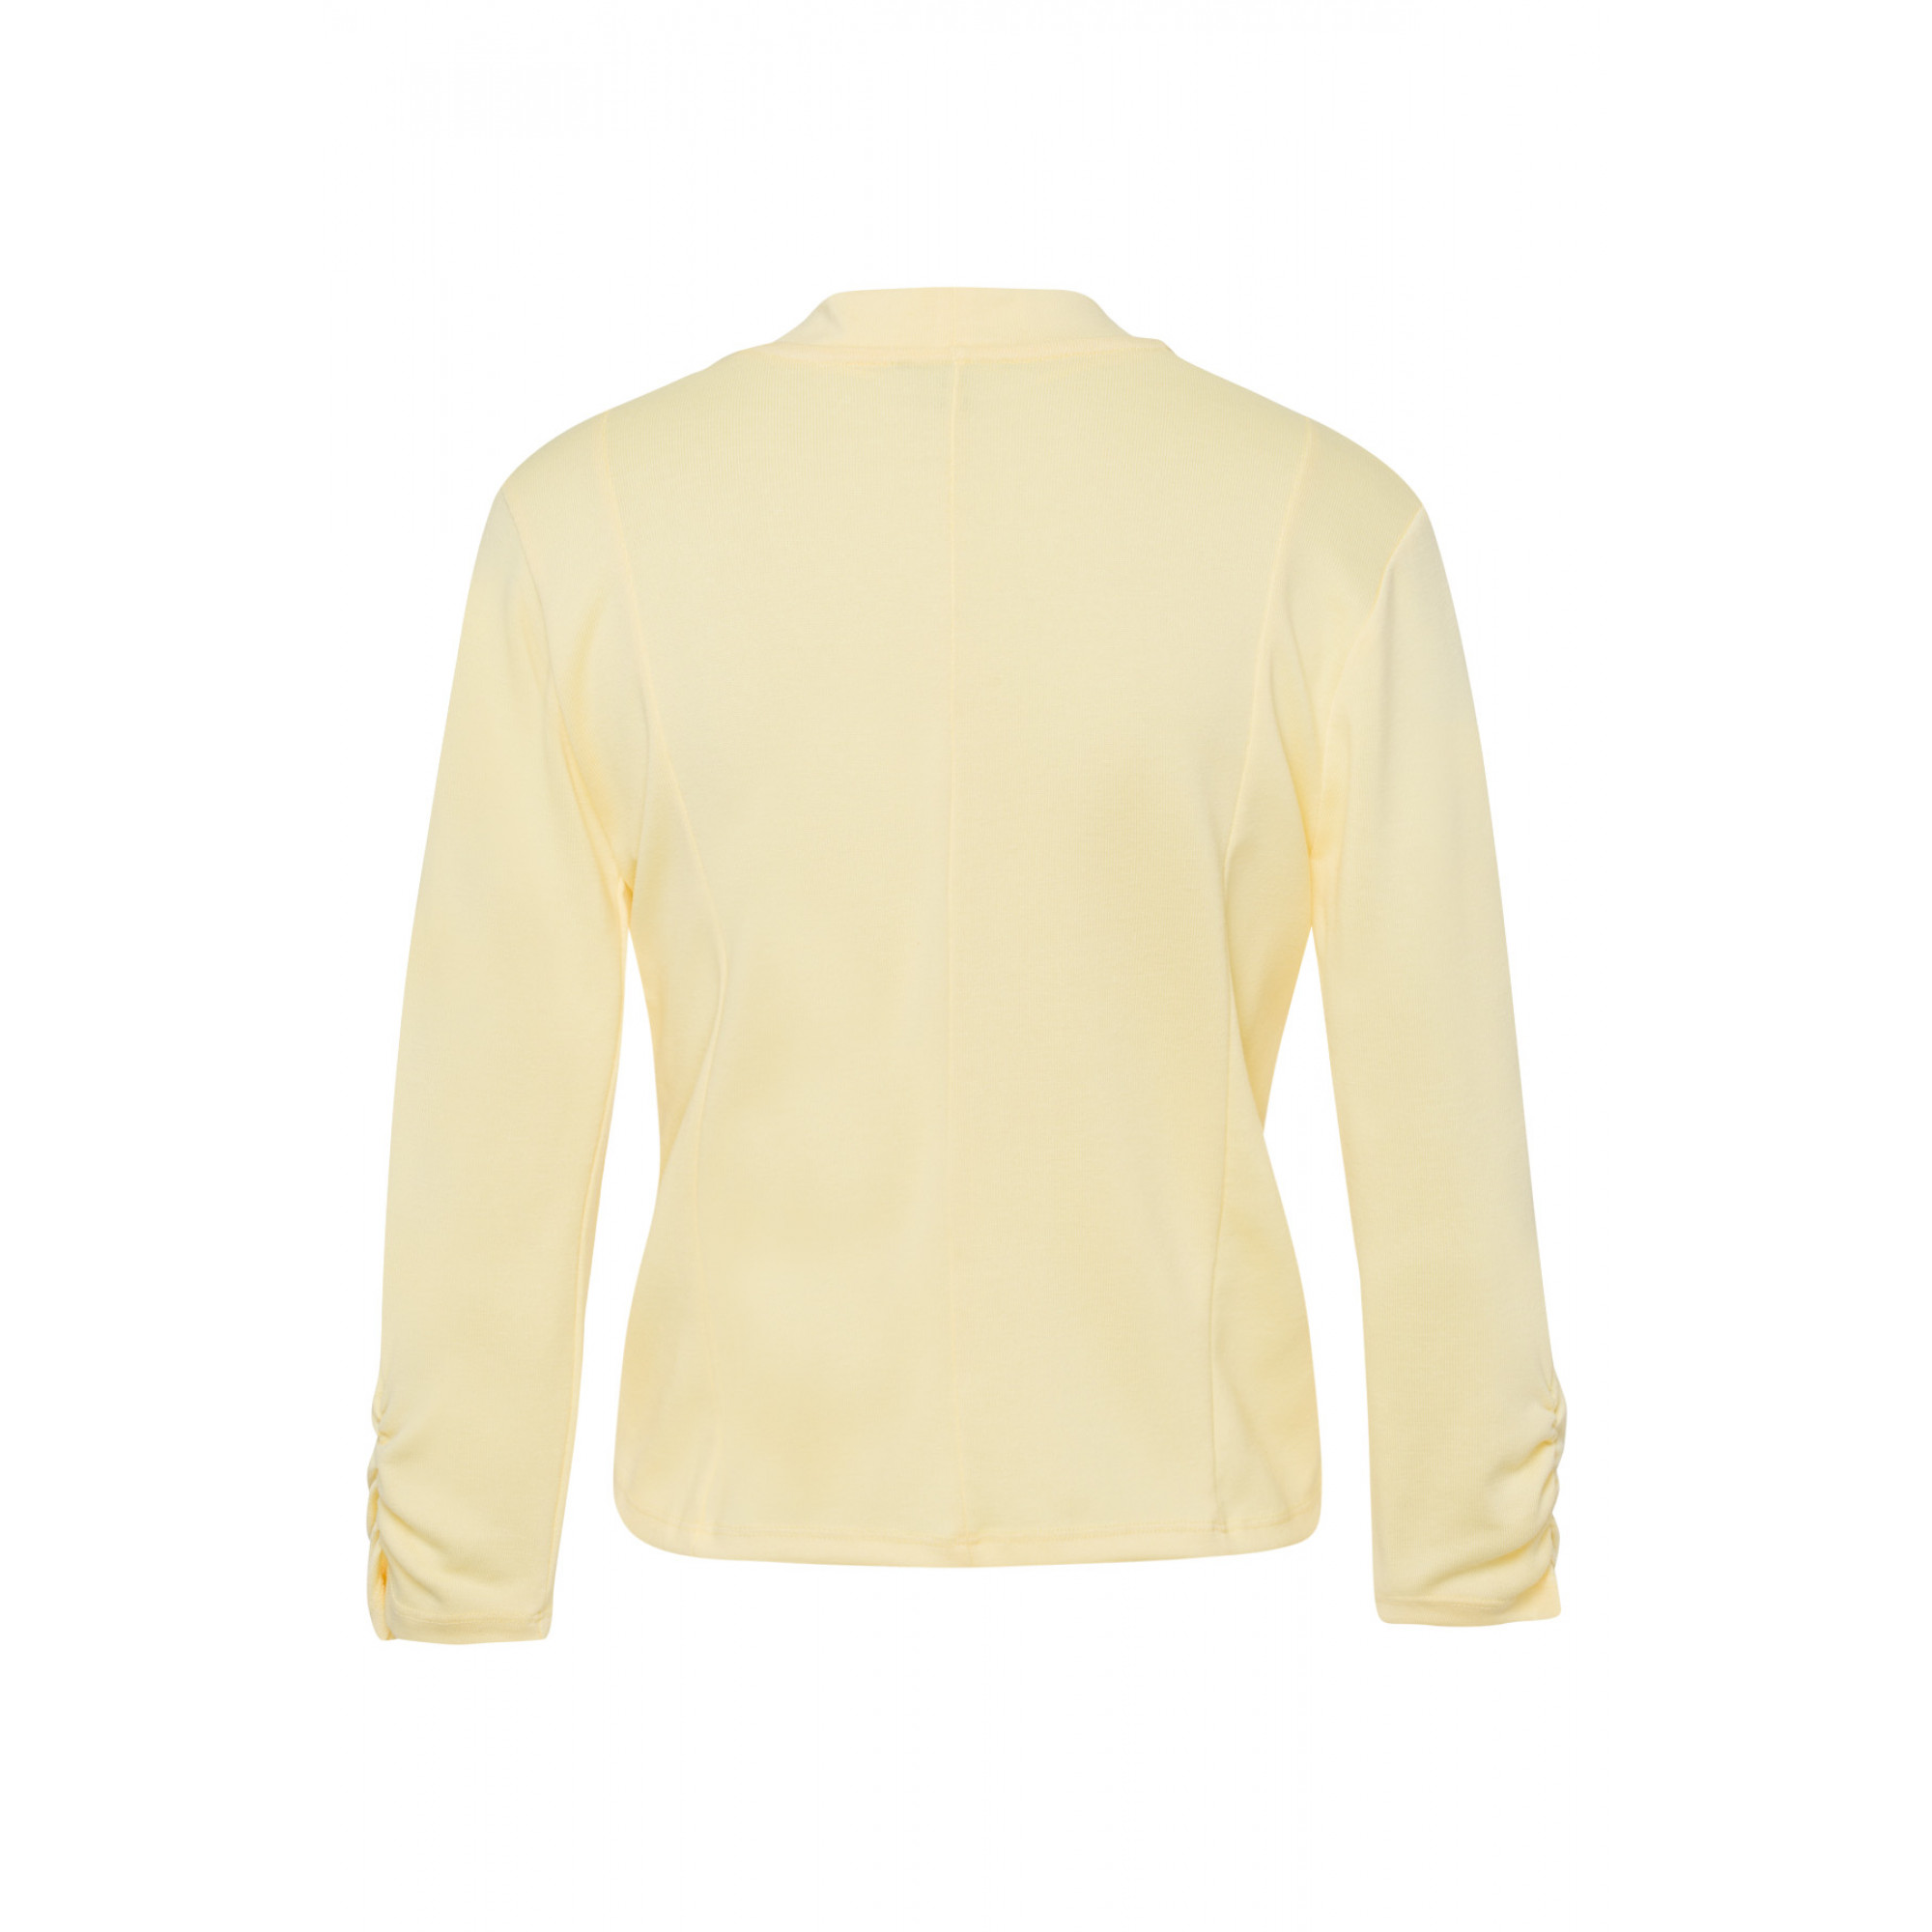 Shirtjacke, pastel yellow 01050022-0128 2